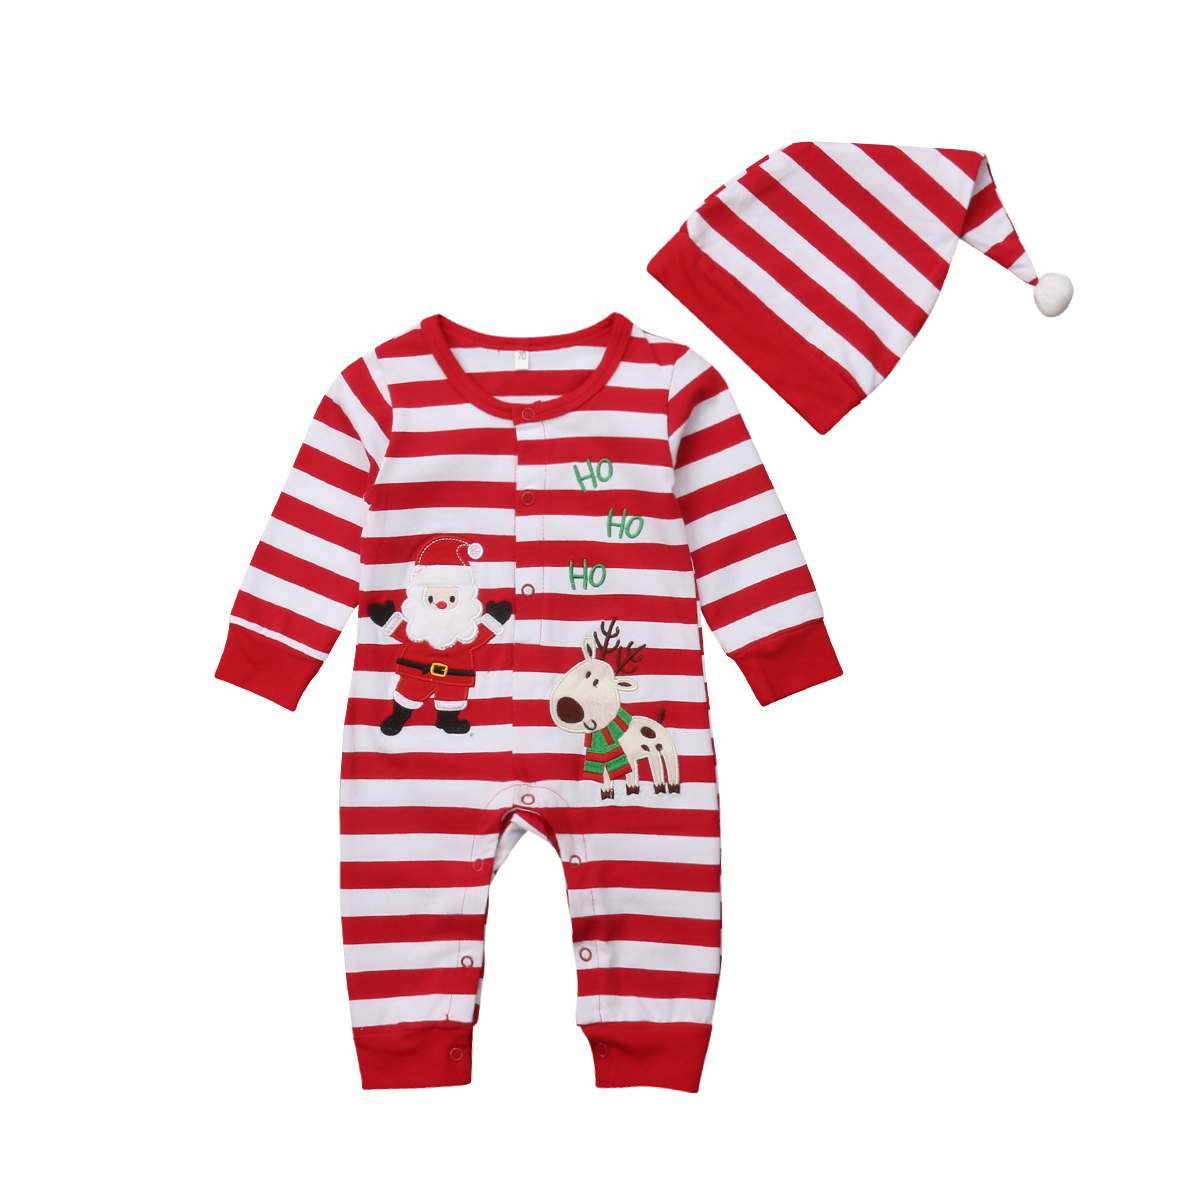 Emmababy New Christmas Newborn Baby Boy Girl Clothes Xmas Romper Jumpsuit One-pieces Infant Winter Clothing Outfit Boys' Baby Clothing